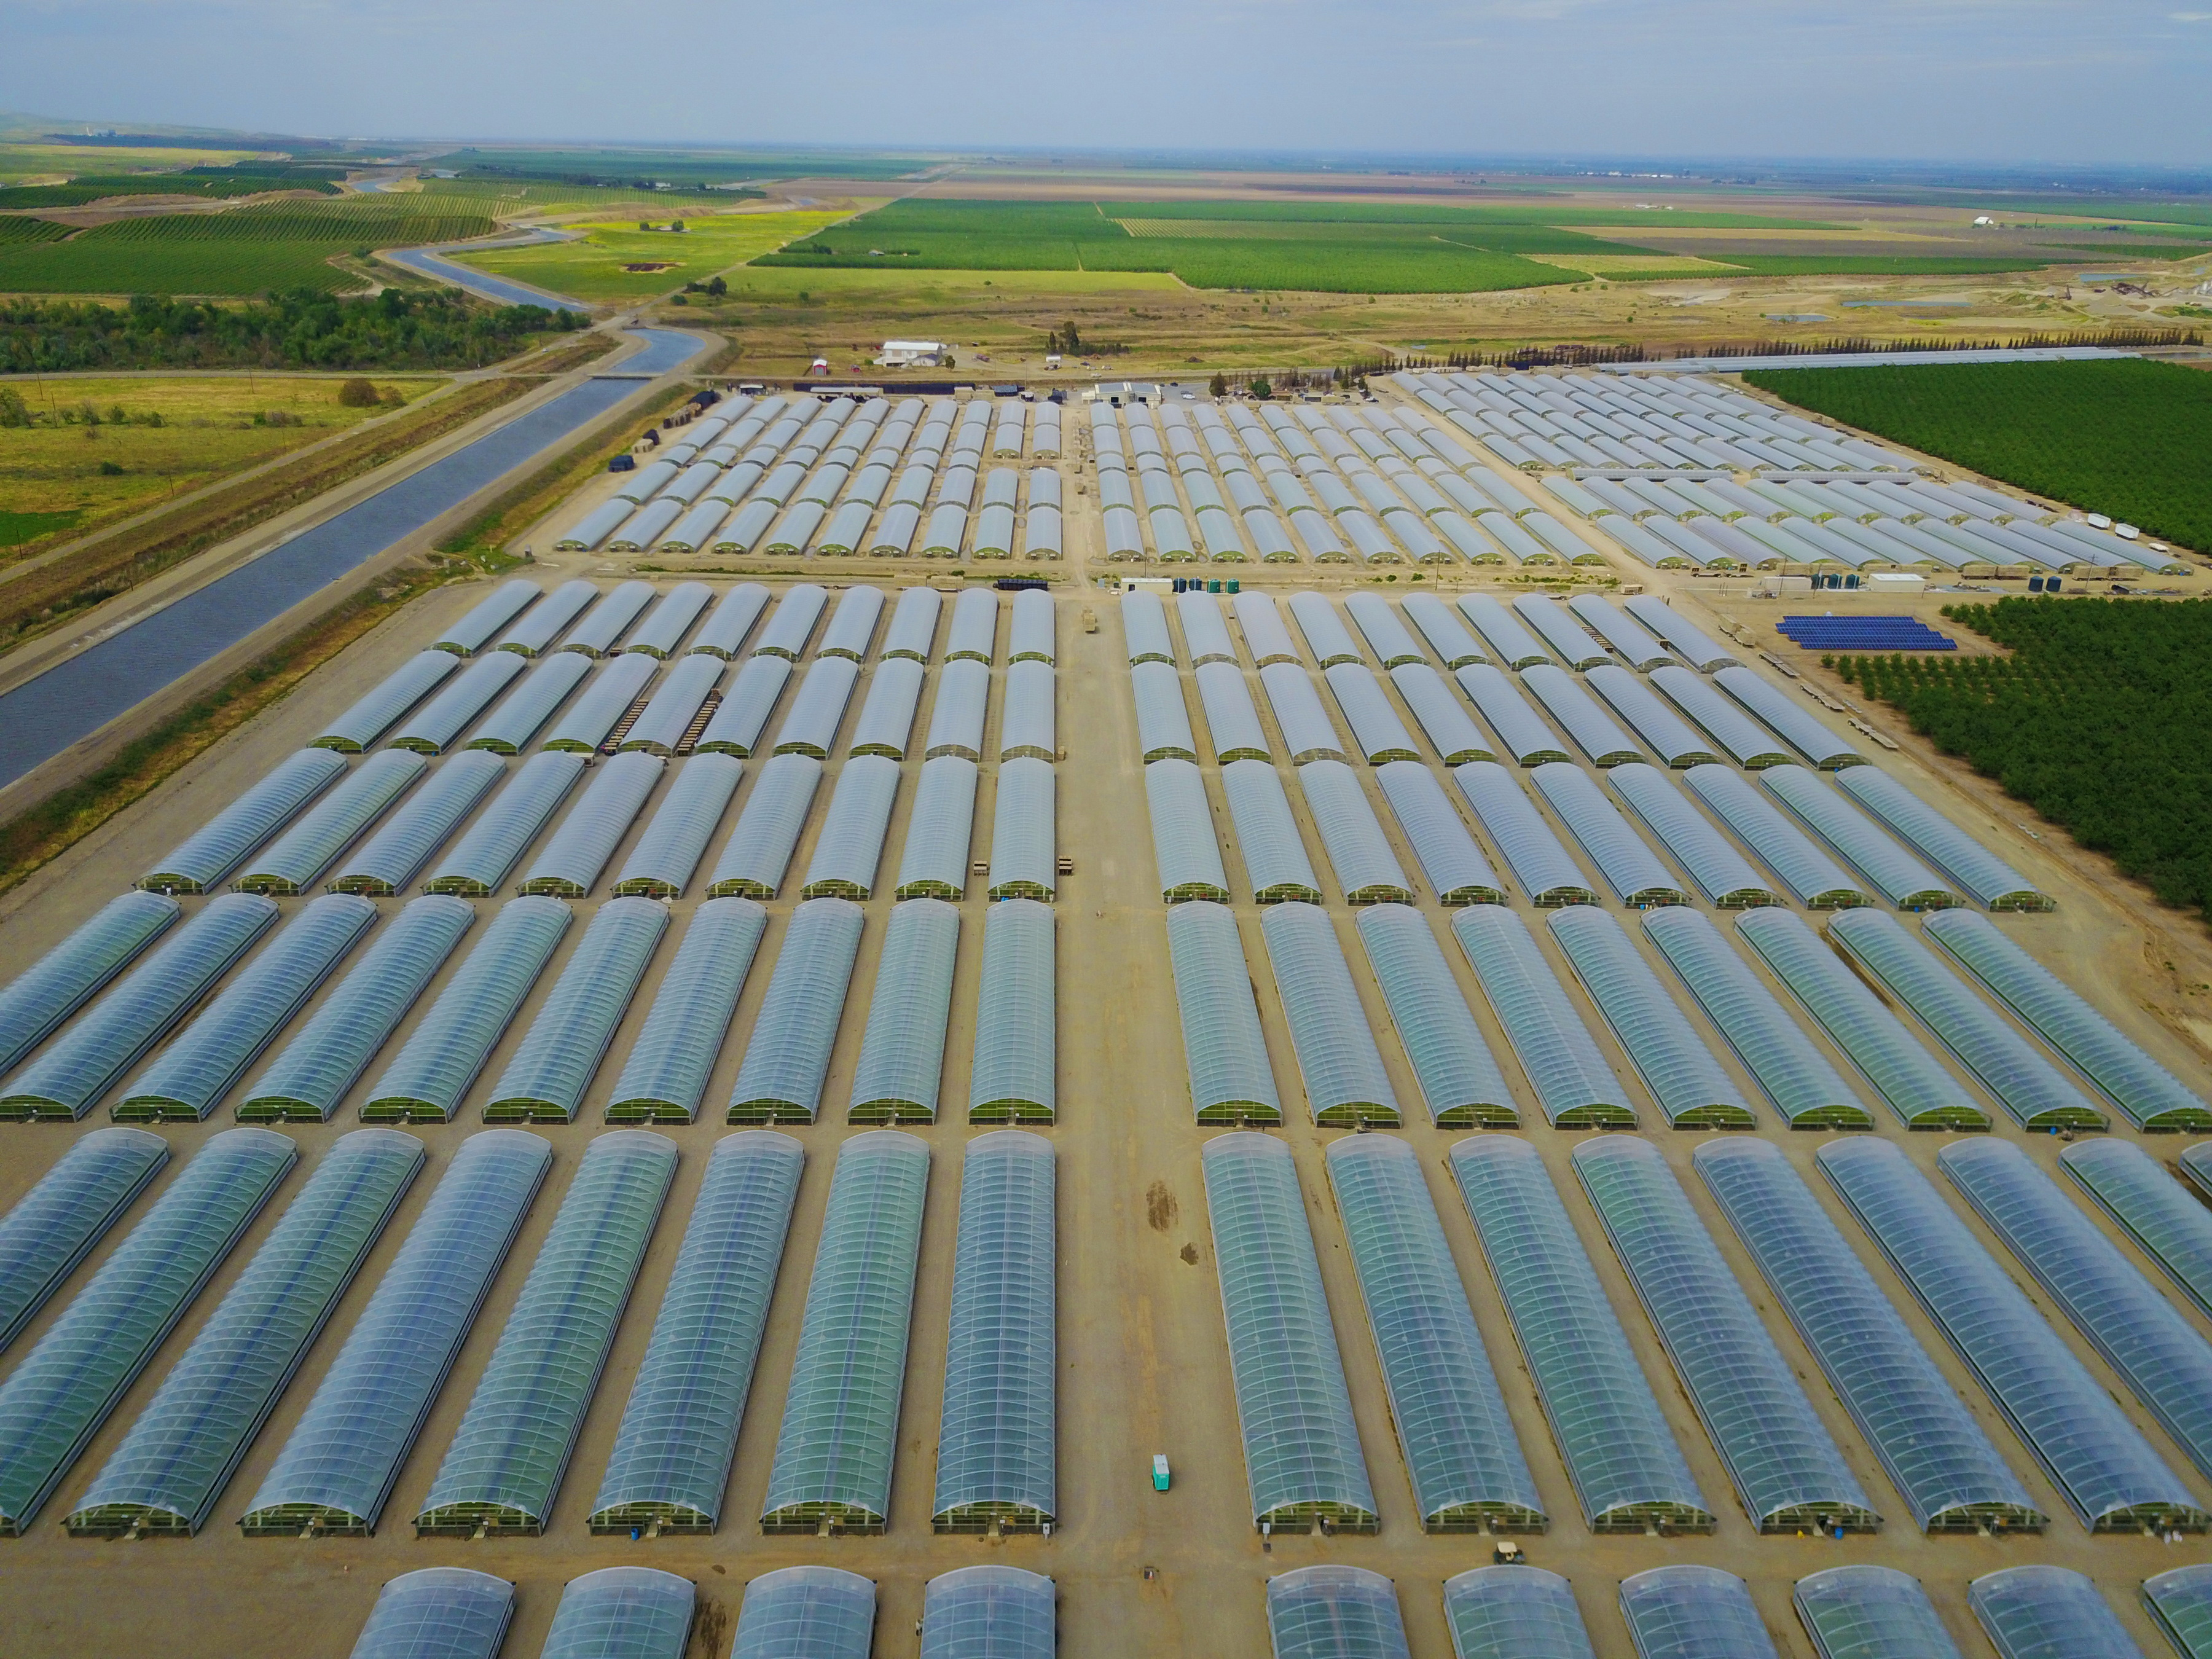 1.1 million sq ft of Agra Tech Thermolator greenhouses at Calif Transplants | Calif Transplants | Newman, CA